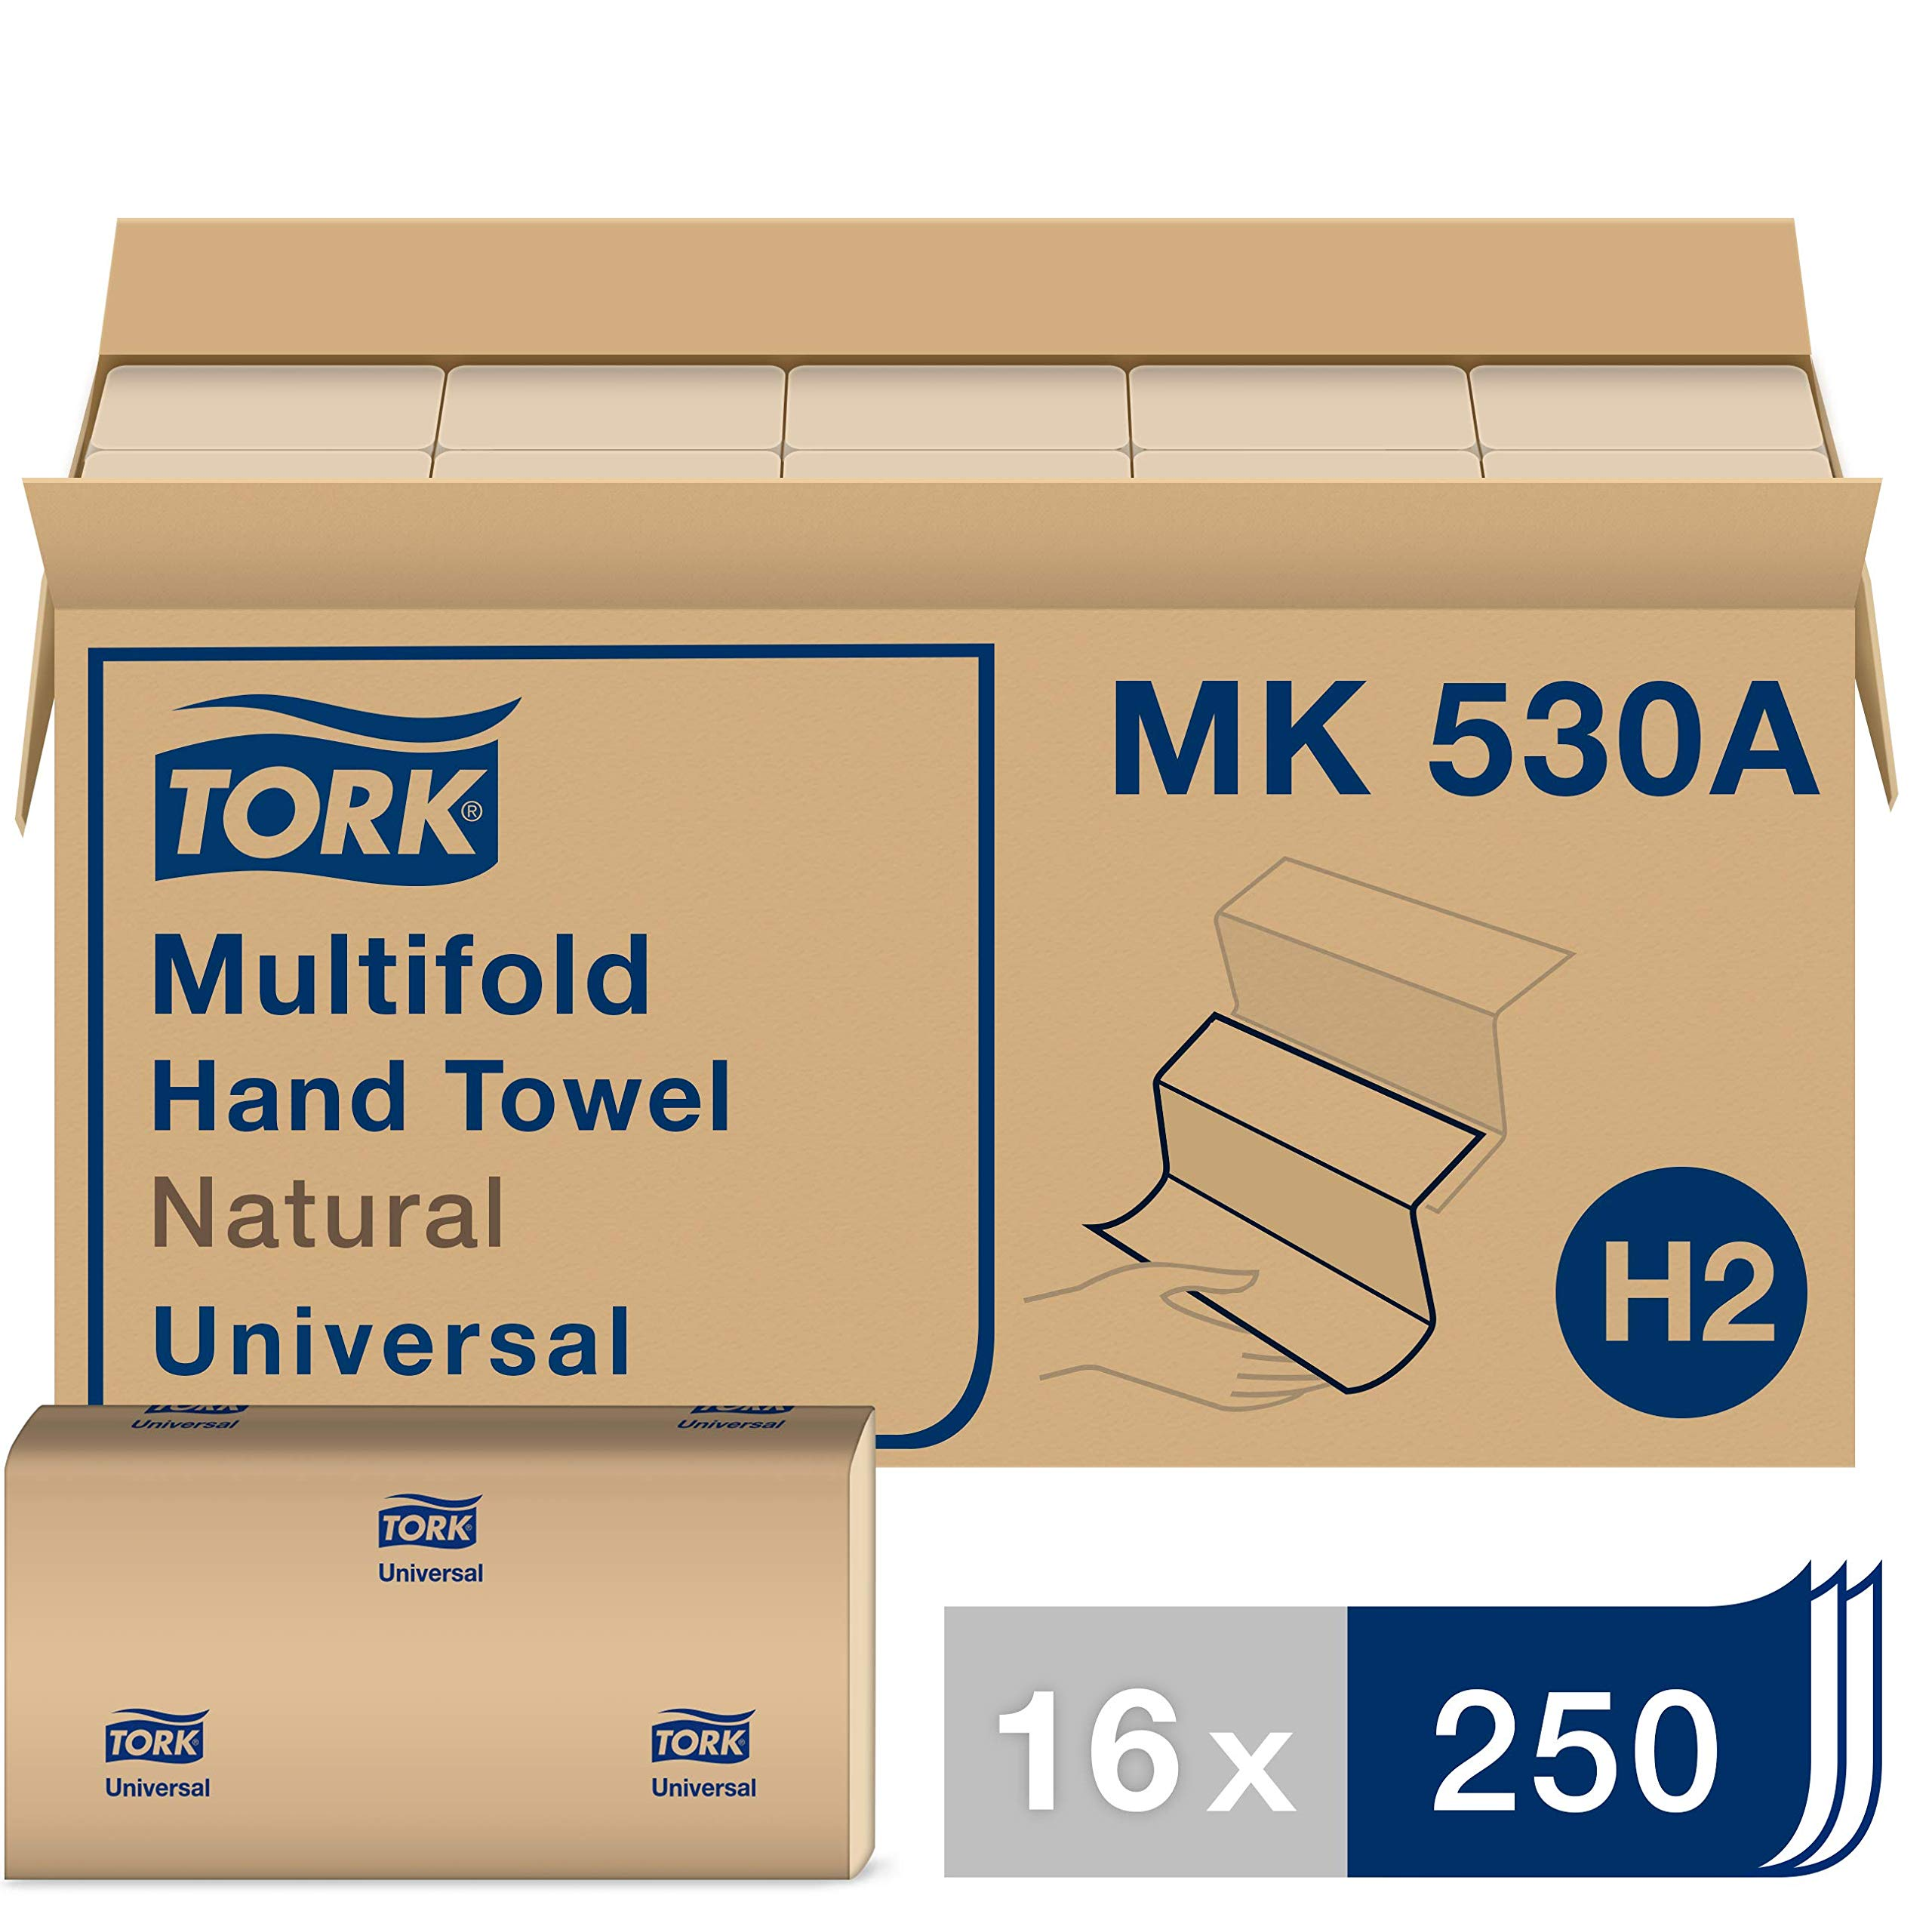 Tork Universal Multifold Paper Towel H2, Disposable Hand Towel MK530A, 100% Recycled Fibers, 1-Ply, Natural - 16 x 250 Sheets